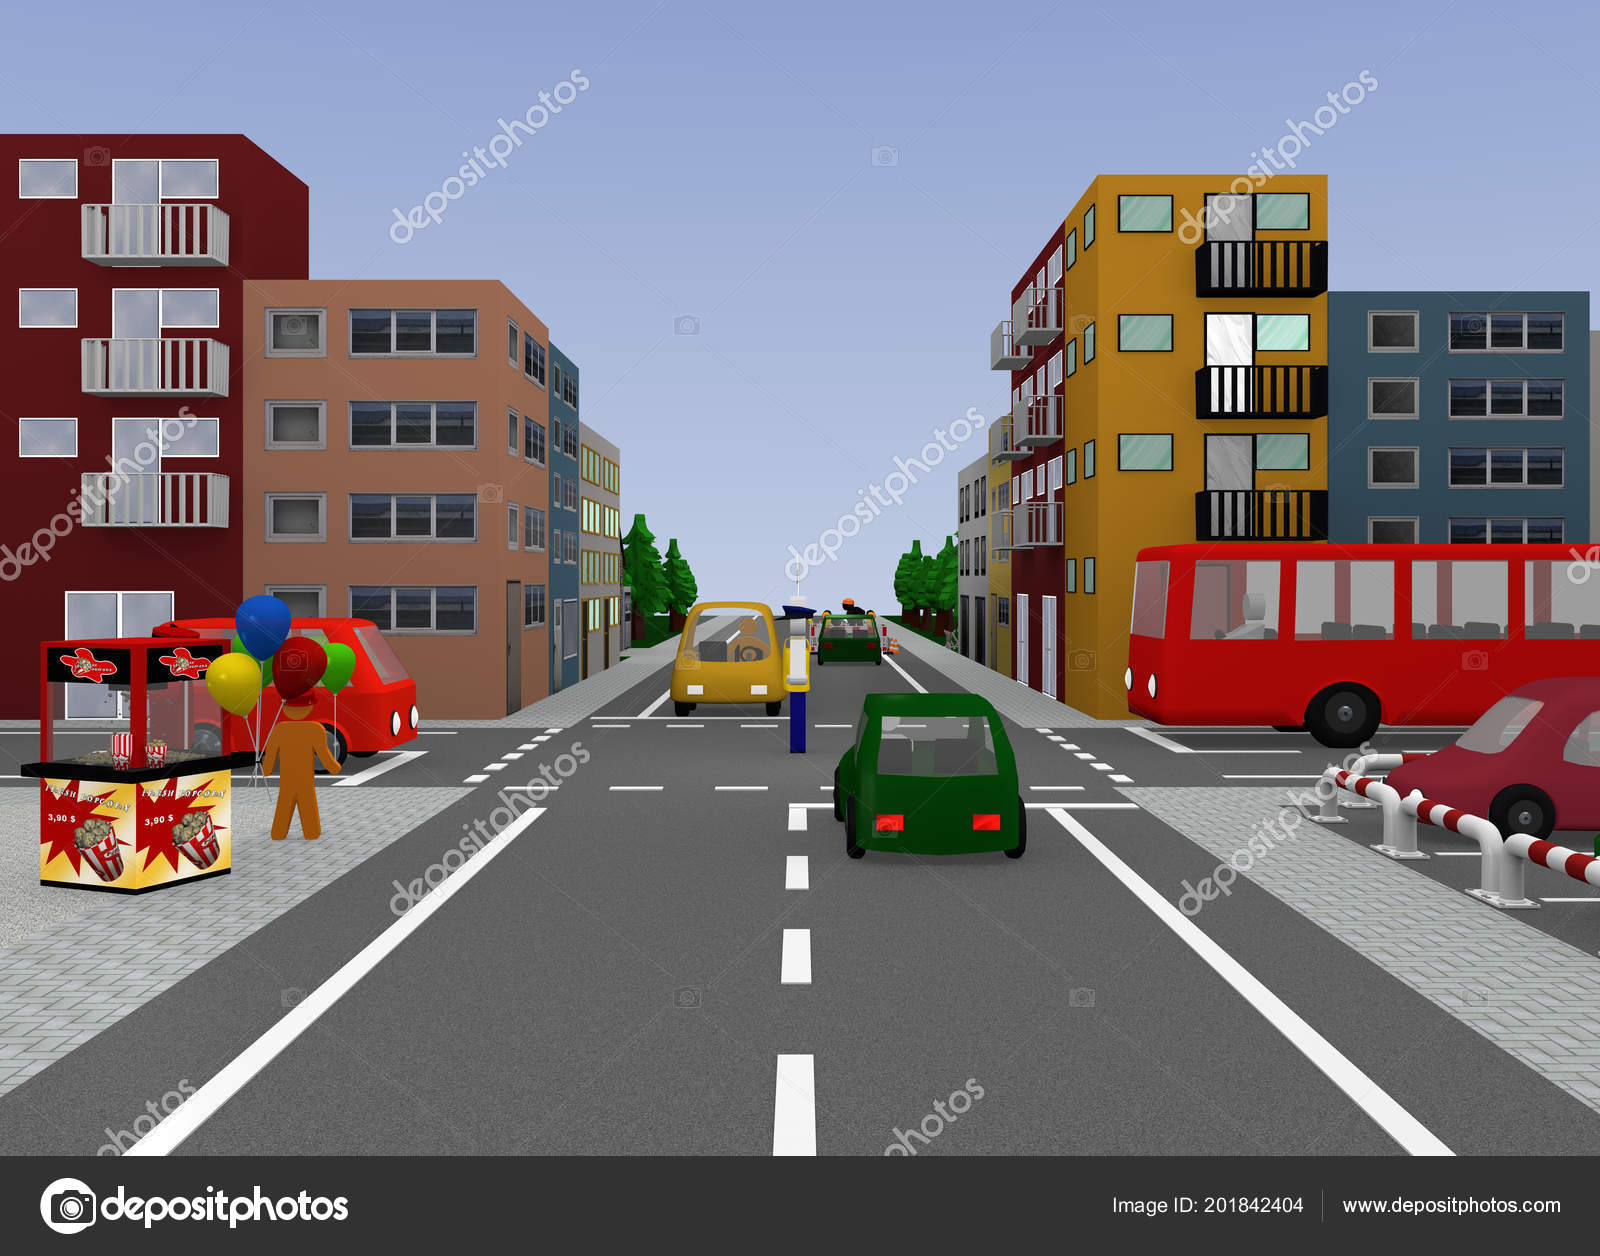 City View Traffic Situation Traffic Control Police Officer Free